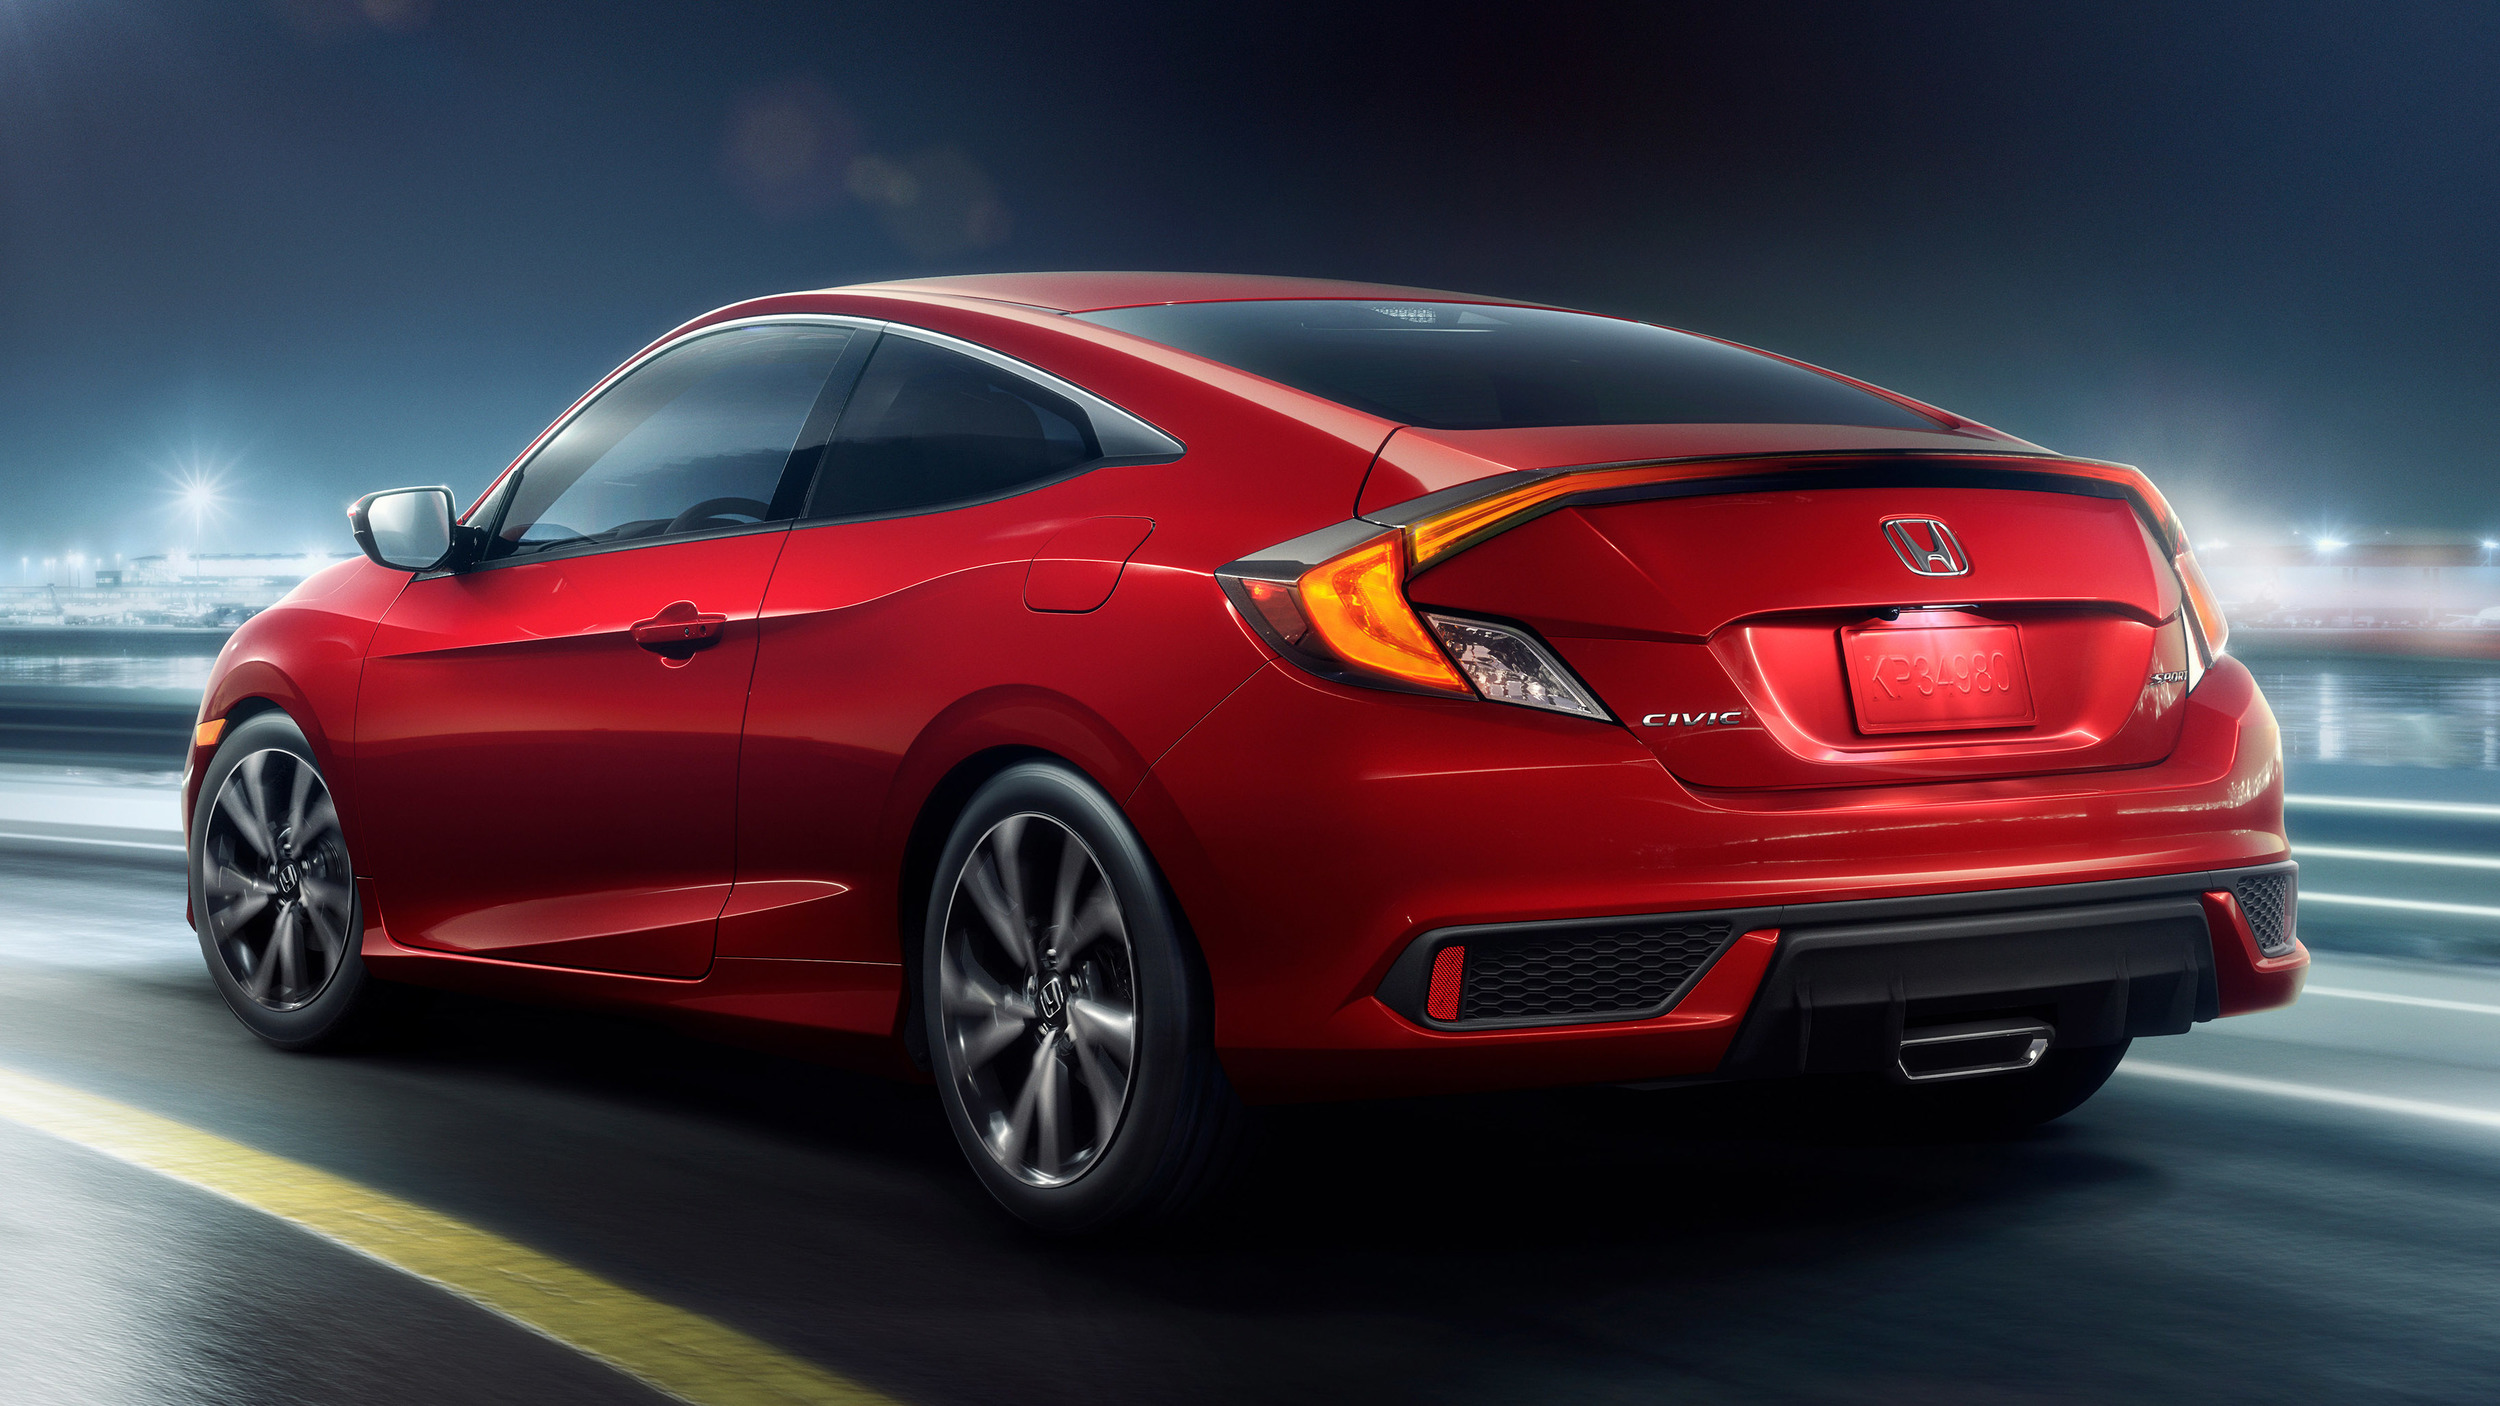 2019-honda-civic-sport-coupe-1-1.jpg